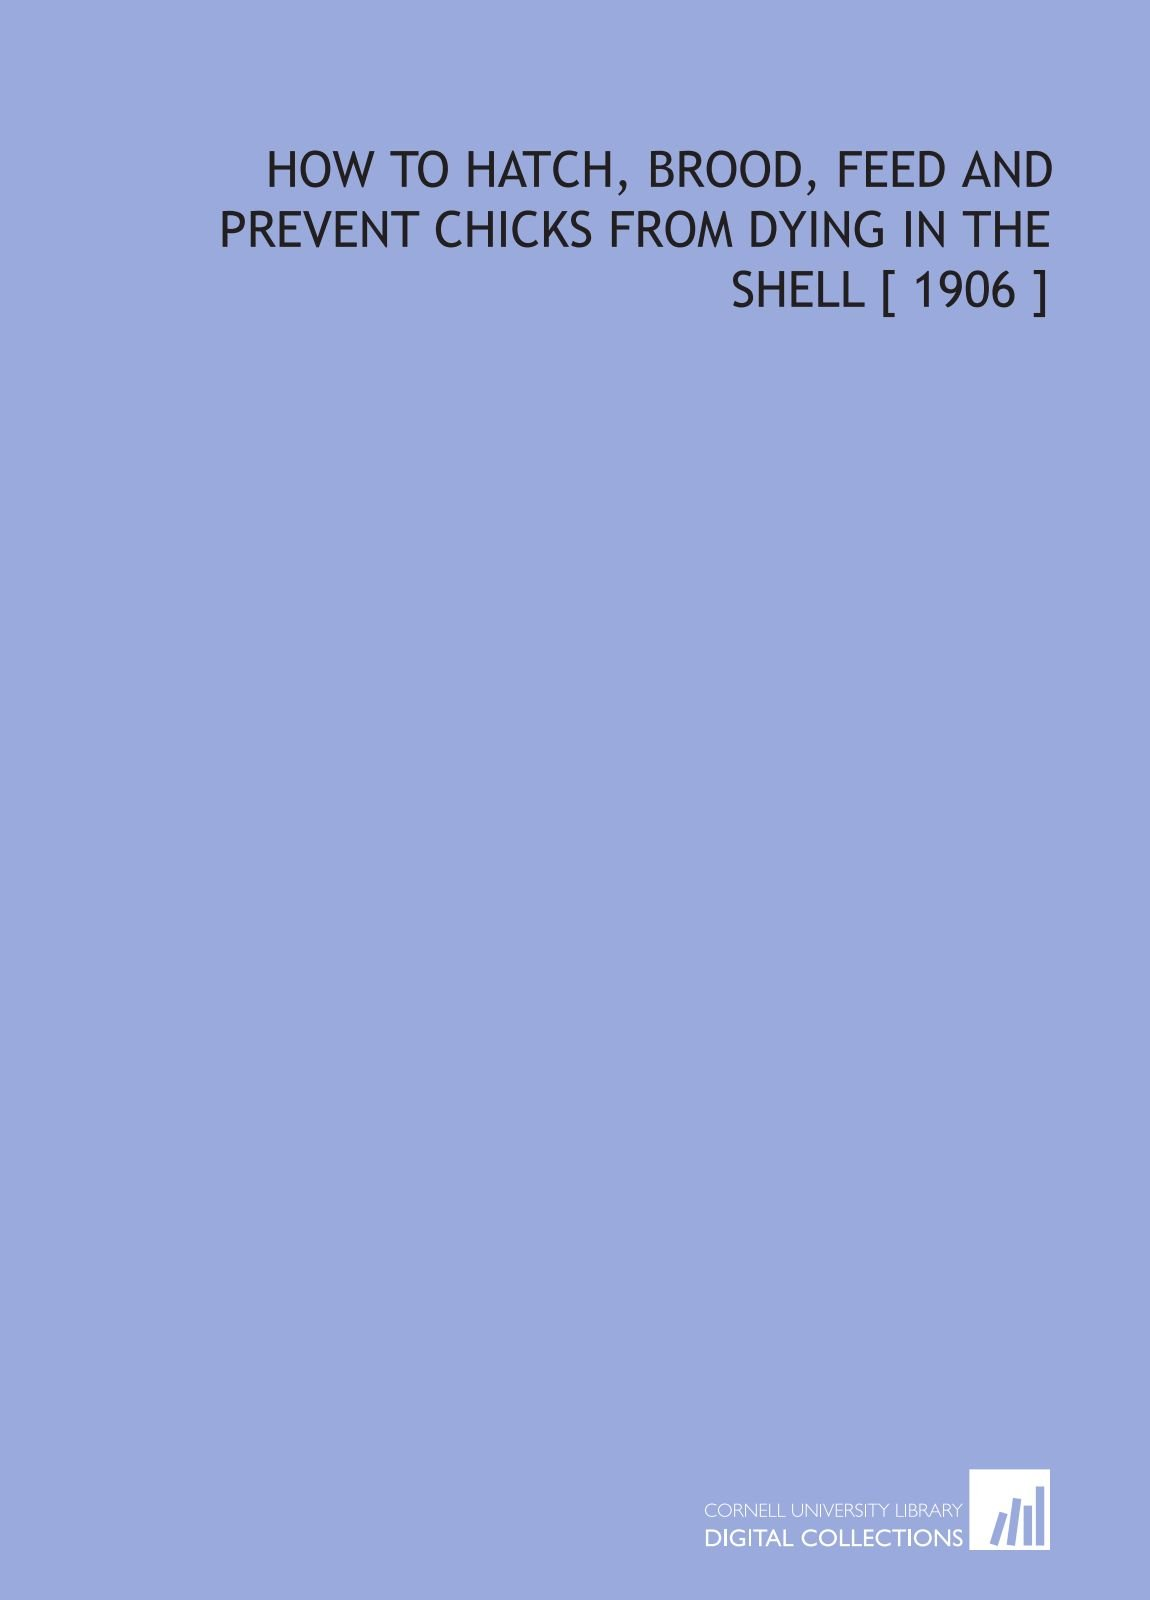 How to Hatch, Brood, Feed and Prevent Chicks From Dying in the Shell [ 1906 ] ebook